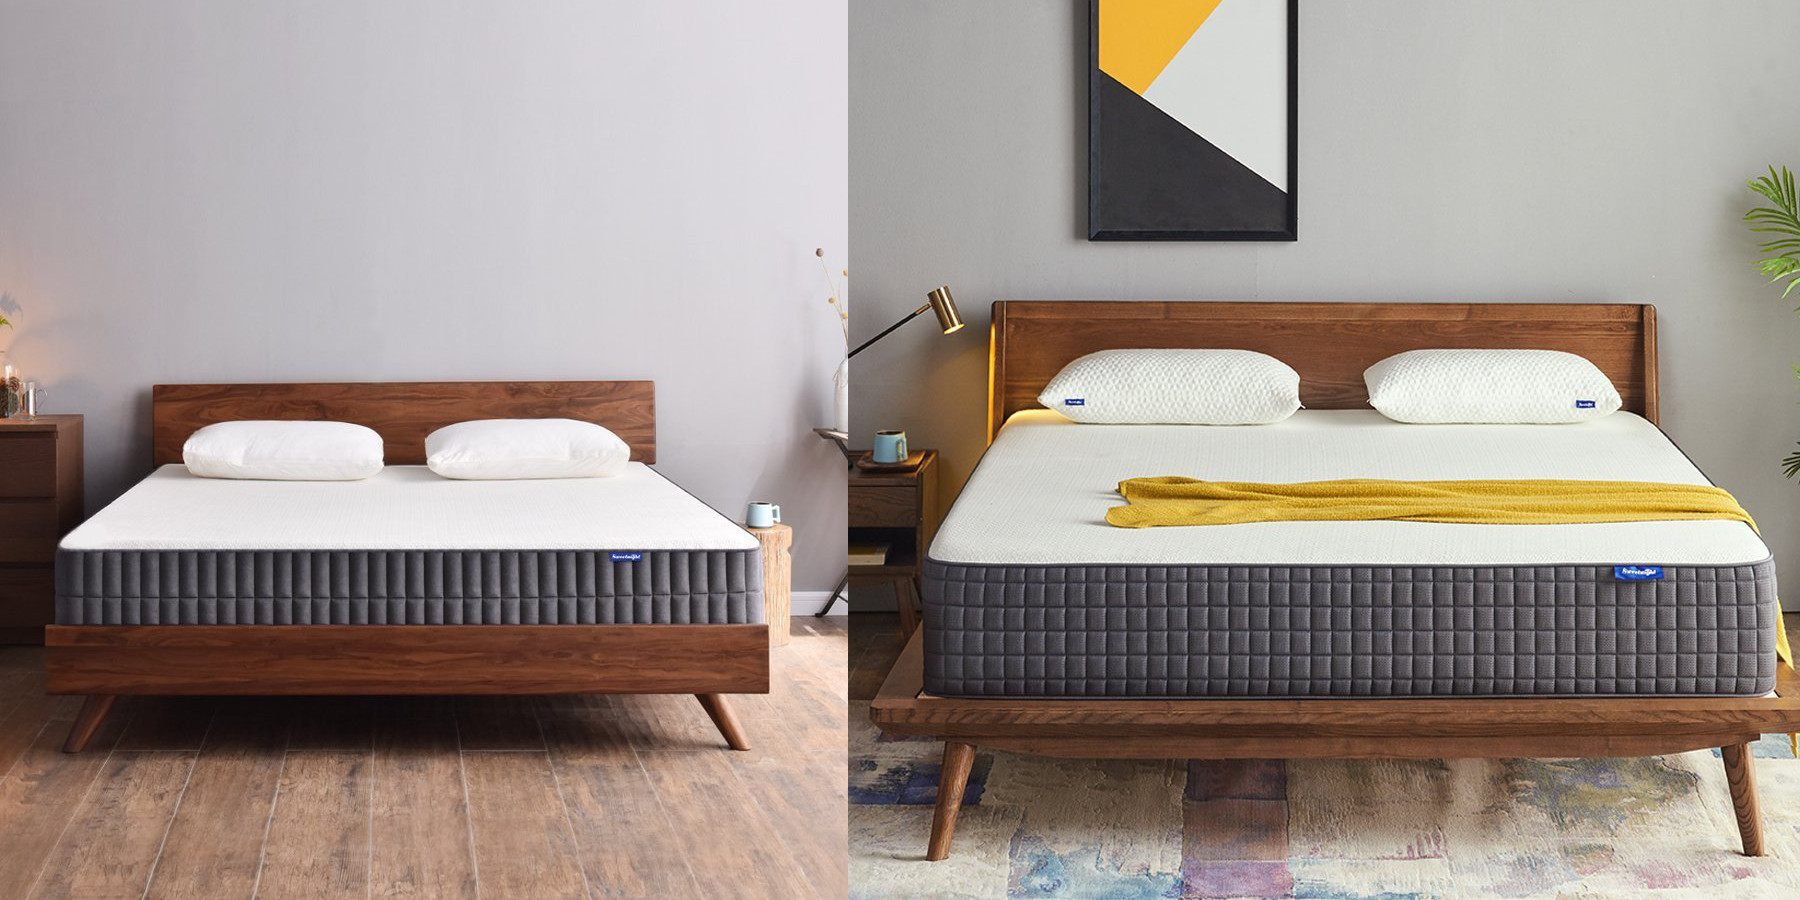 Sweetnight Gel Memory Mattresses For 100 Off Today At